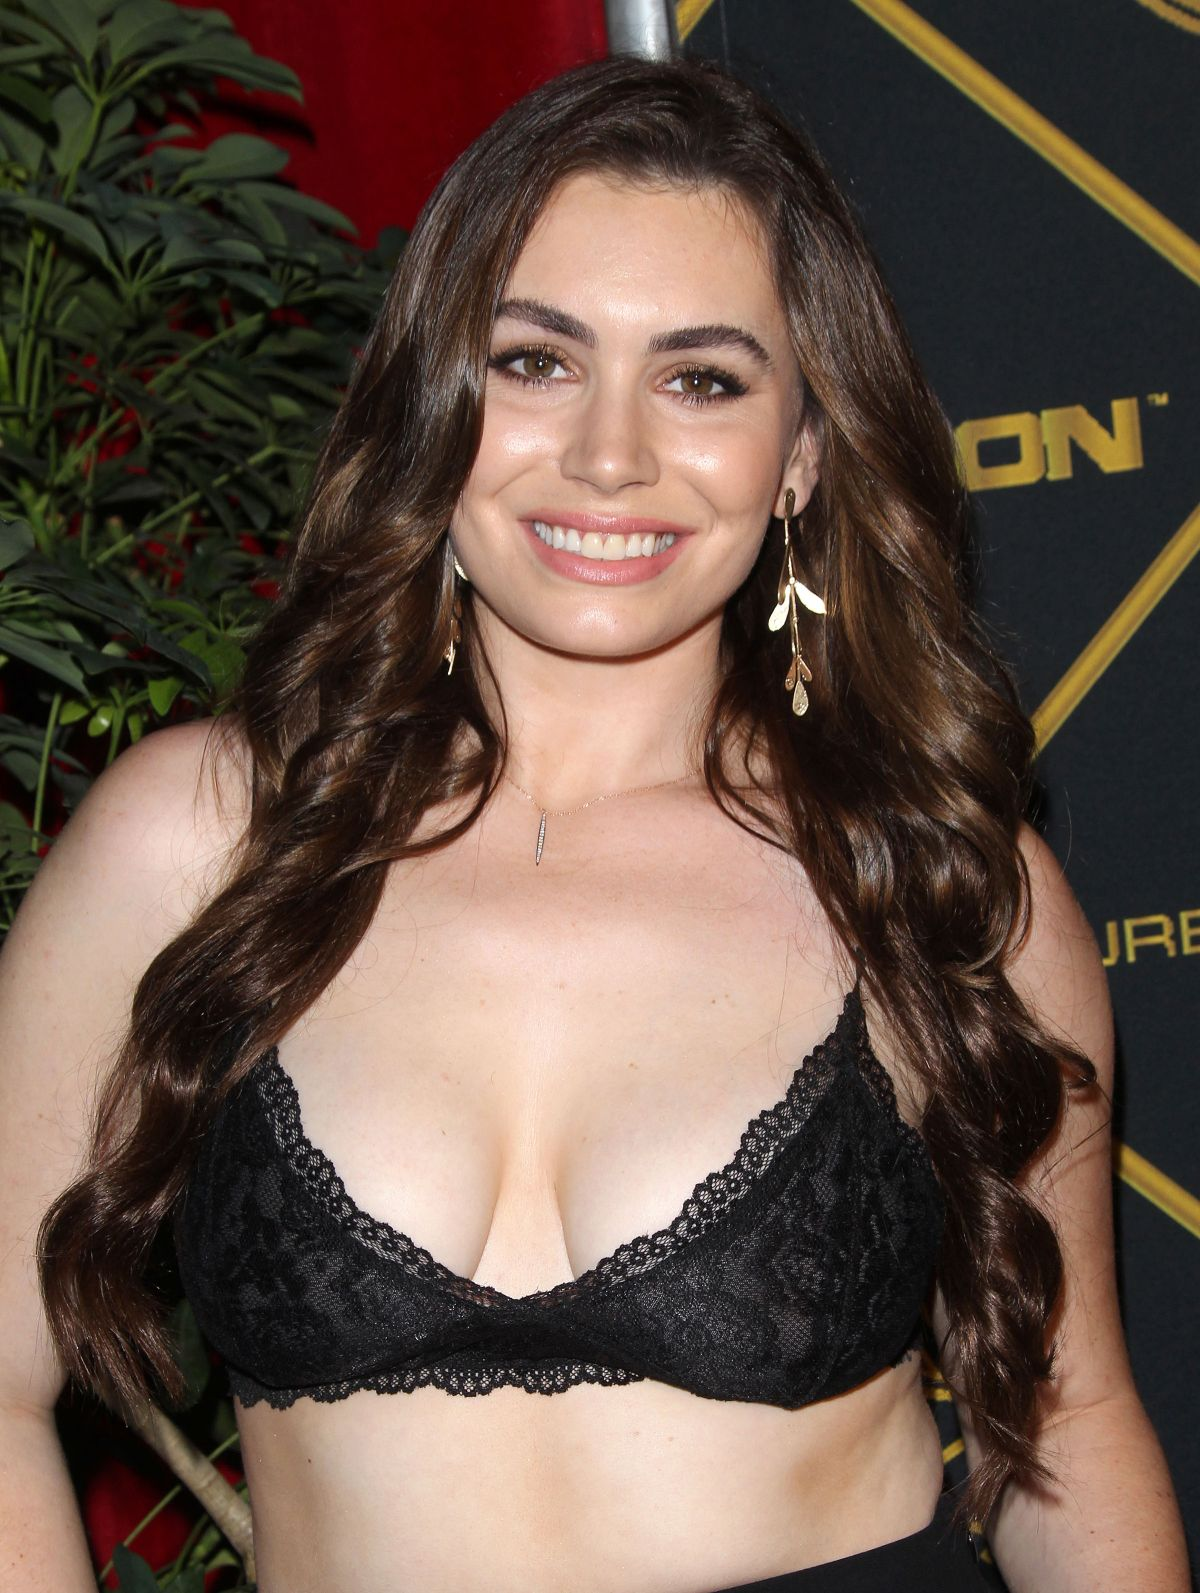 Sophie Simmons At 2016 Maxim Hot 100 Party In Los Angeles 07 30 2016 5 Hawtcelebs